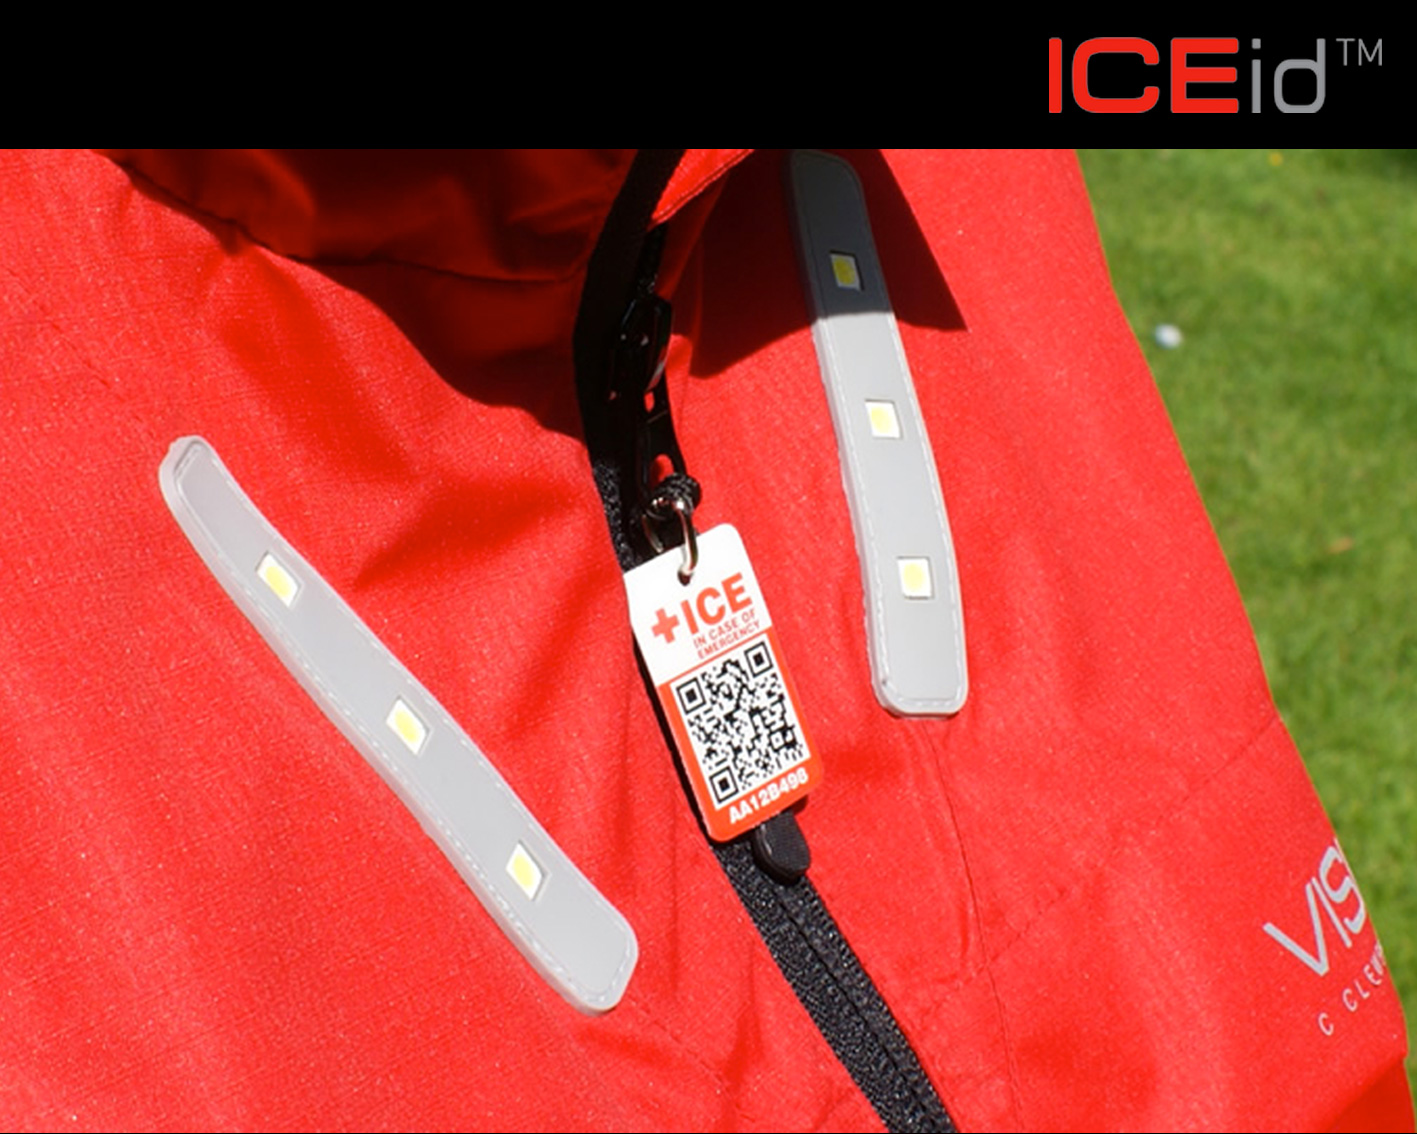 ICEid - Hi-Tech In-Case-of-Emergency Tags